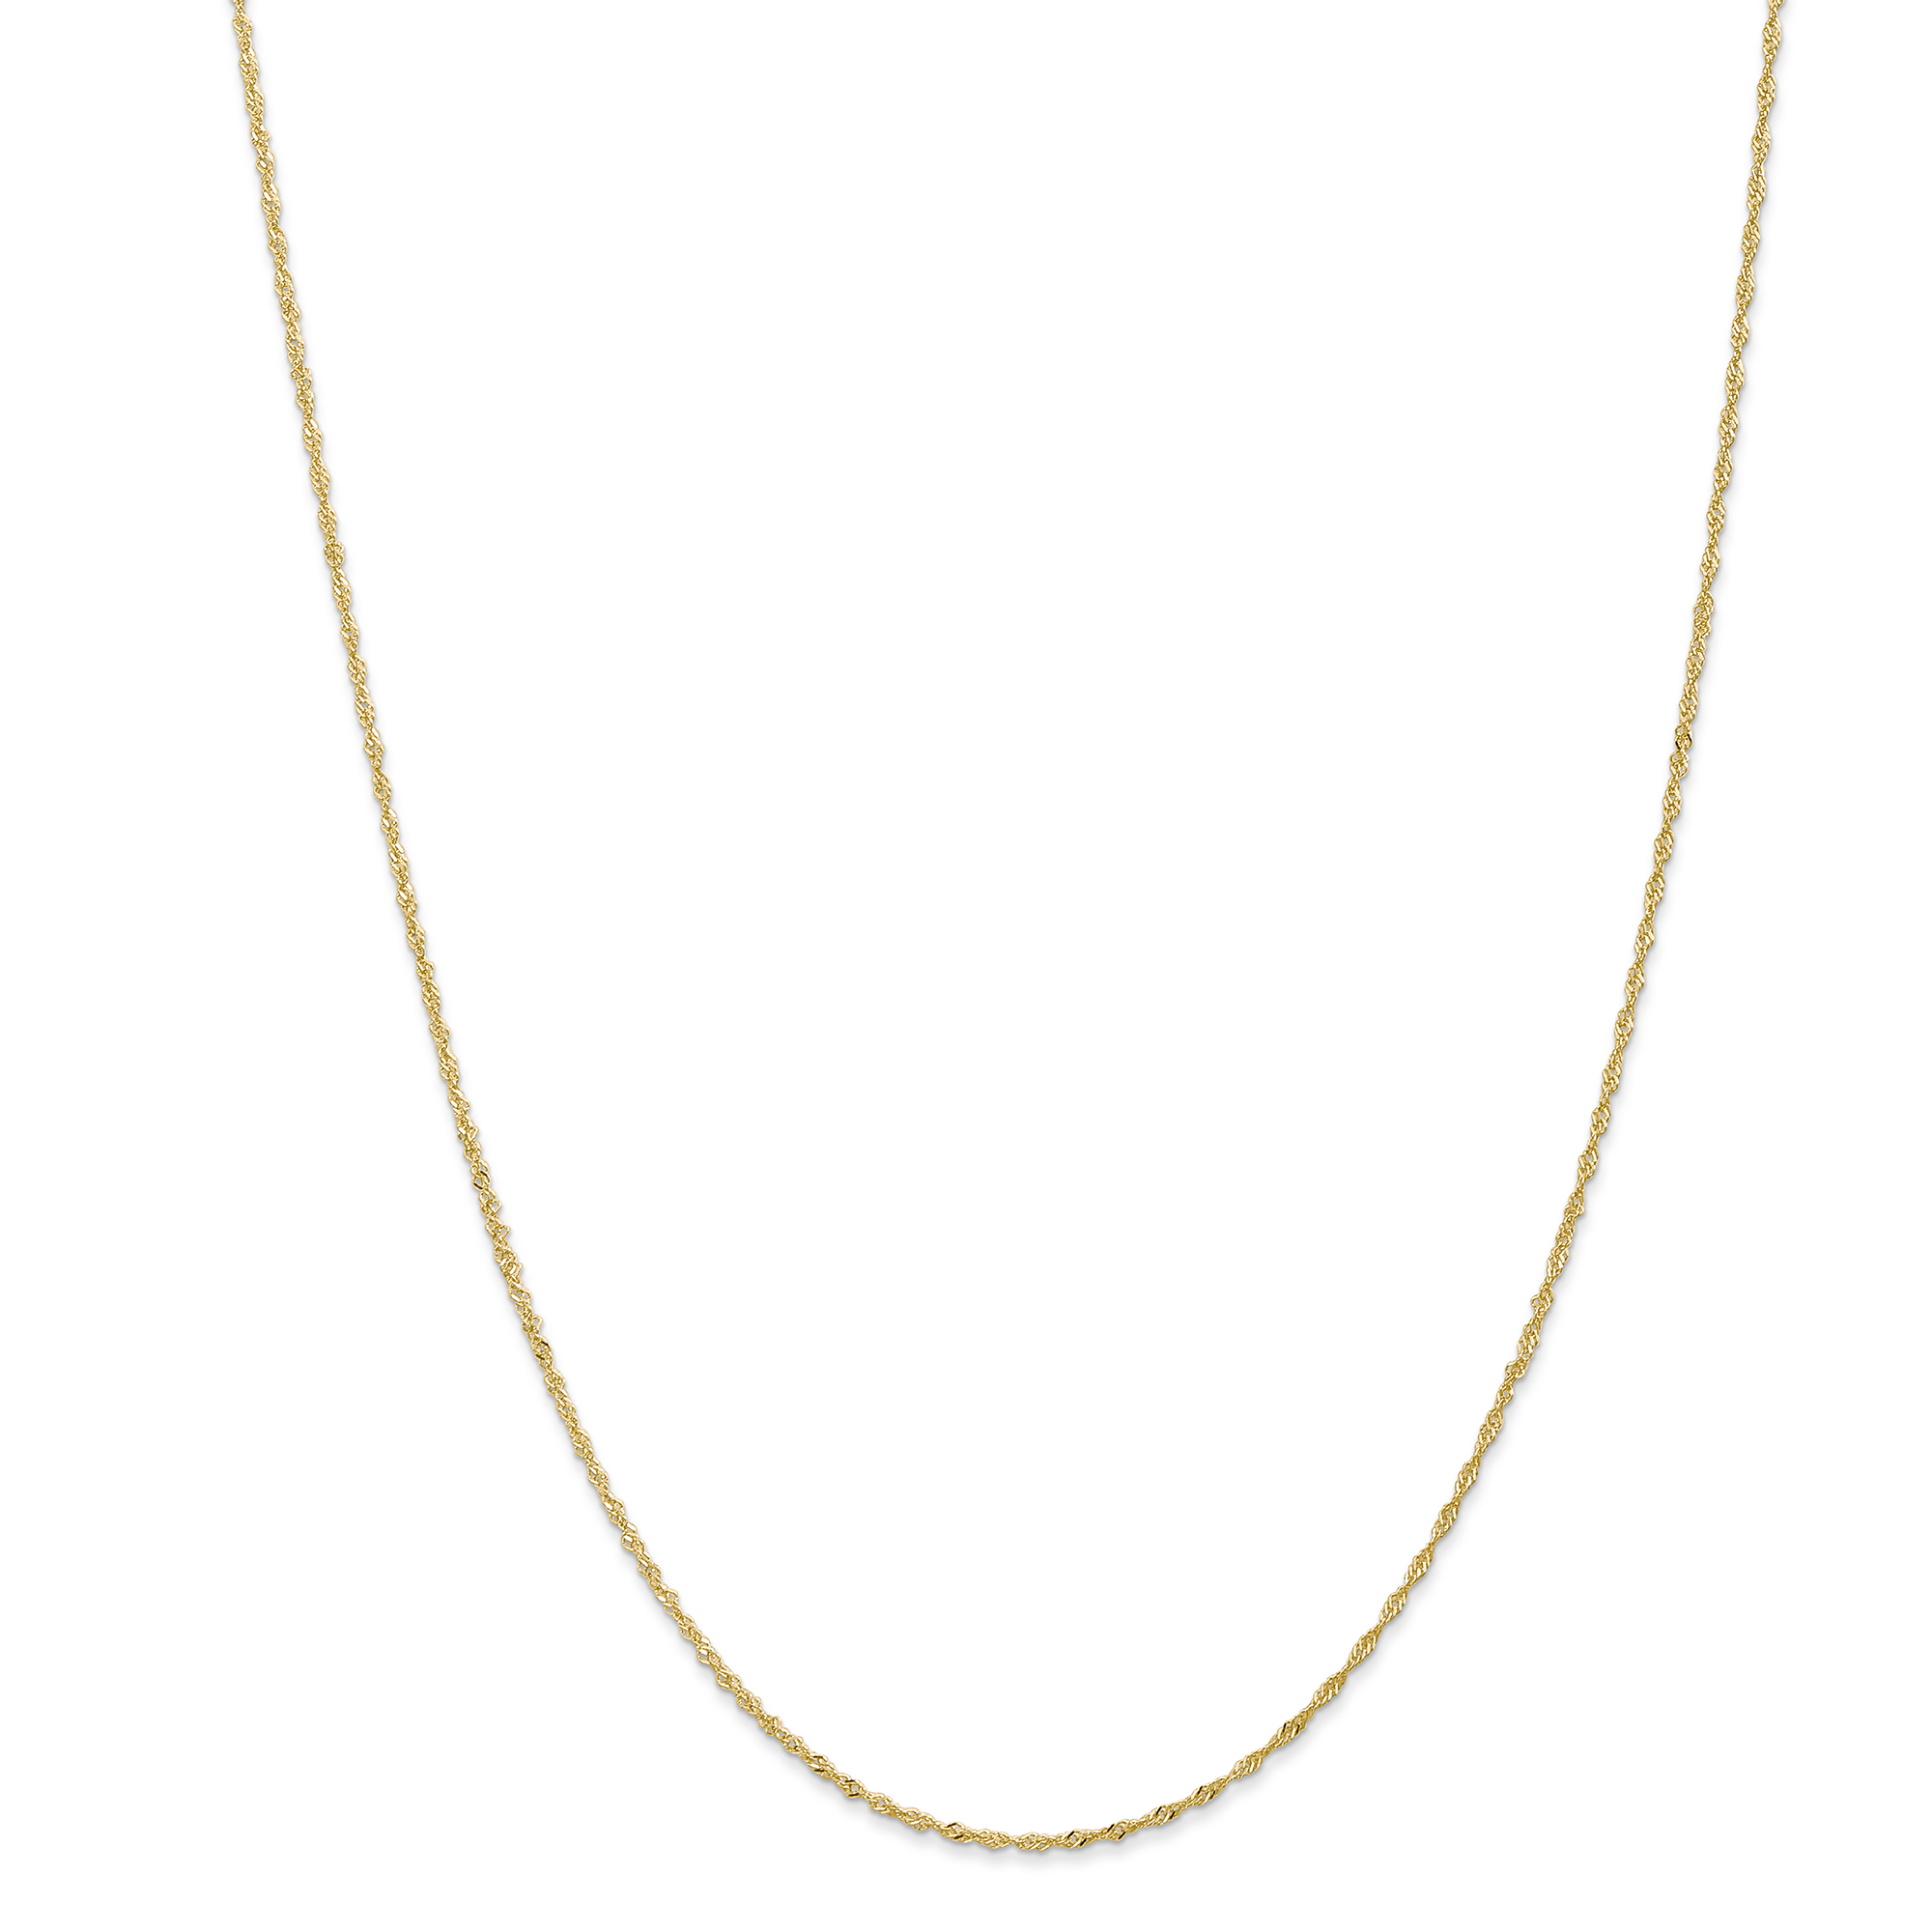 14K .80mm White Gold 18in Square Box Necklace Chain